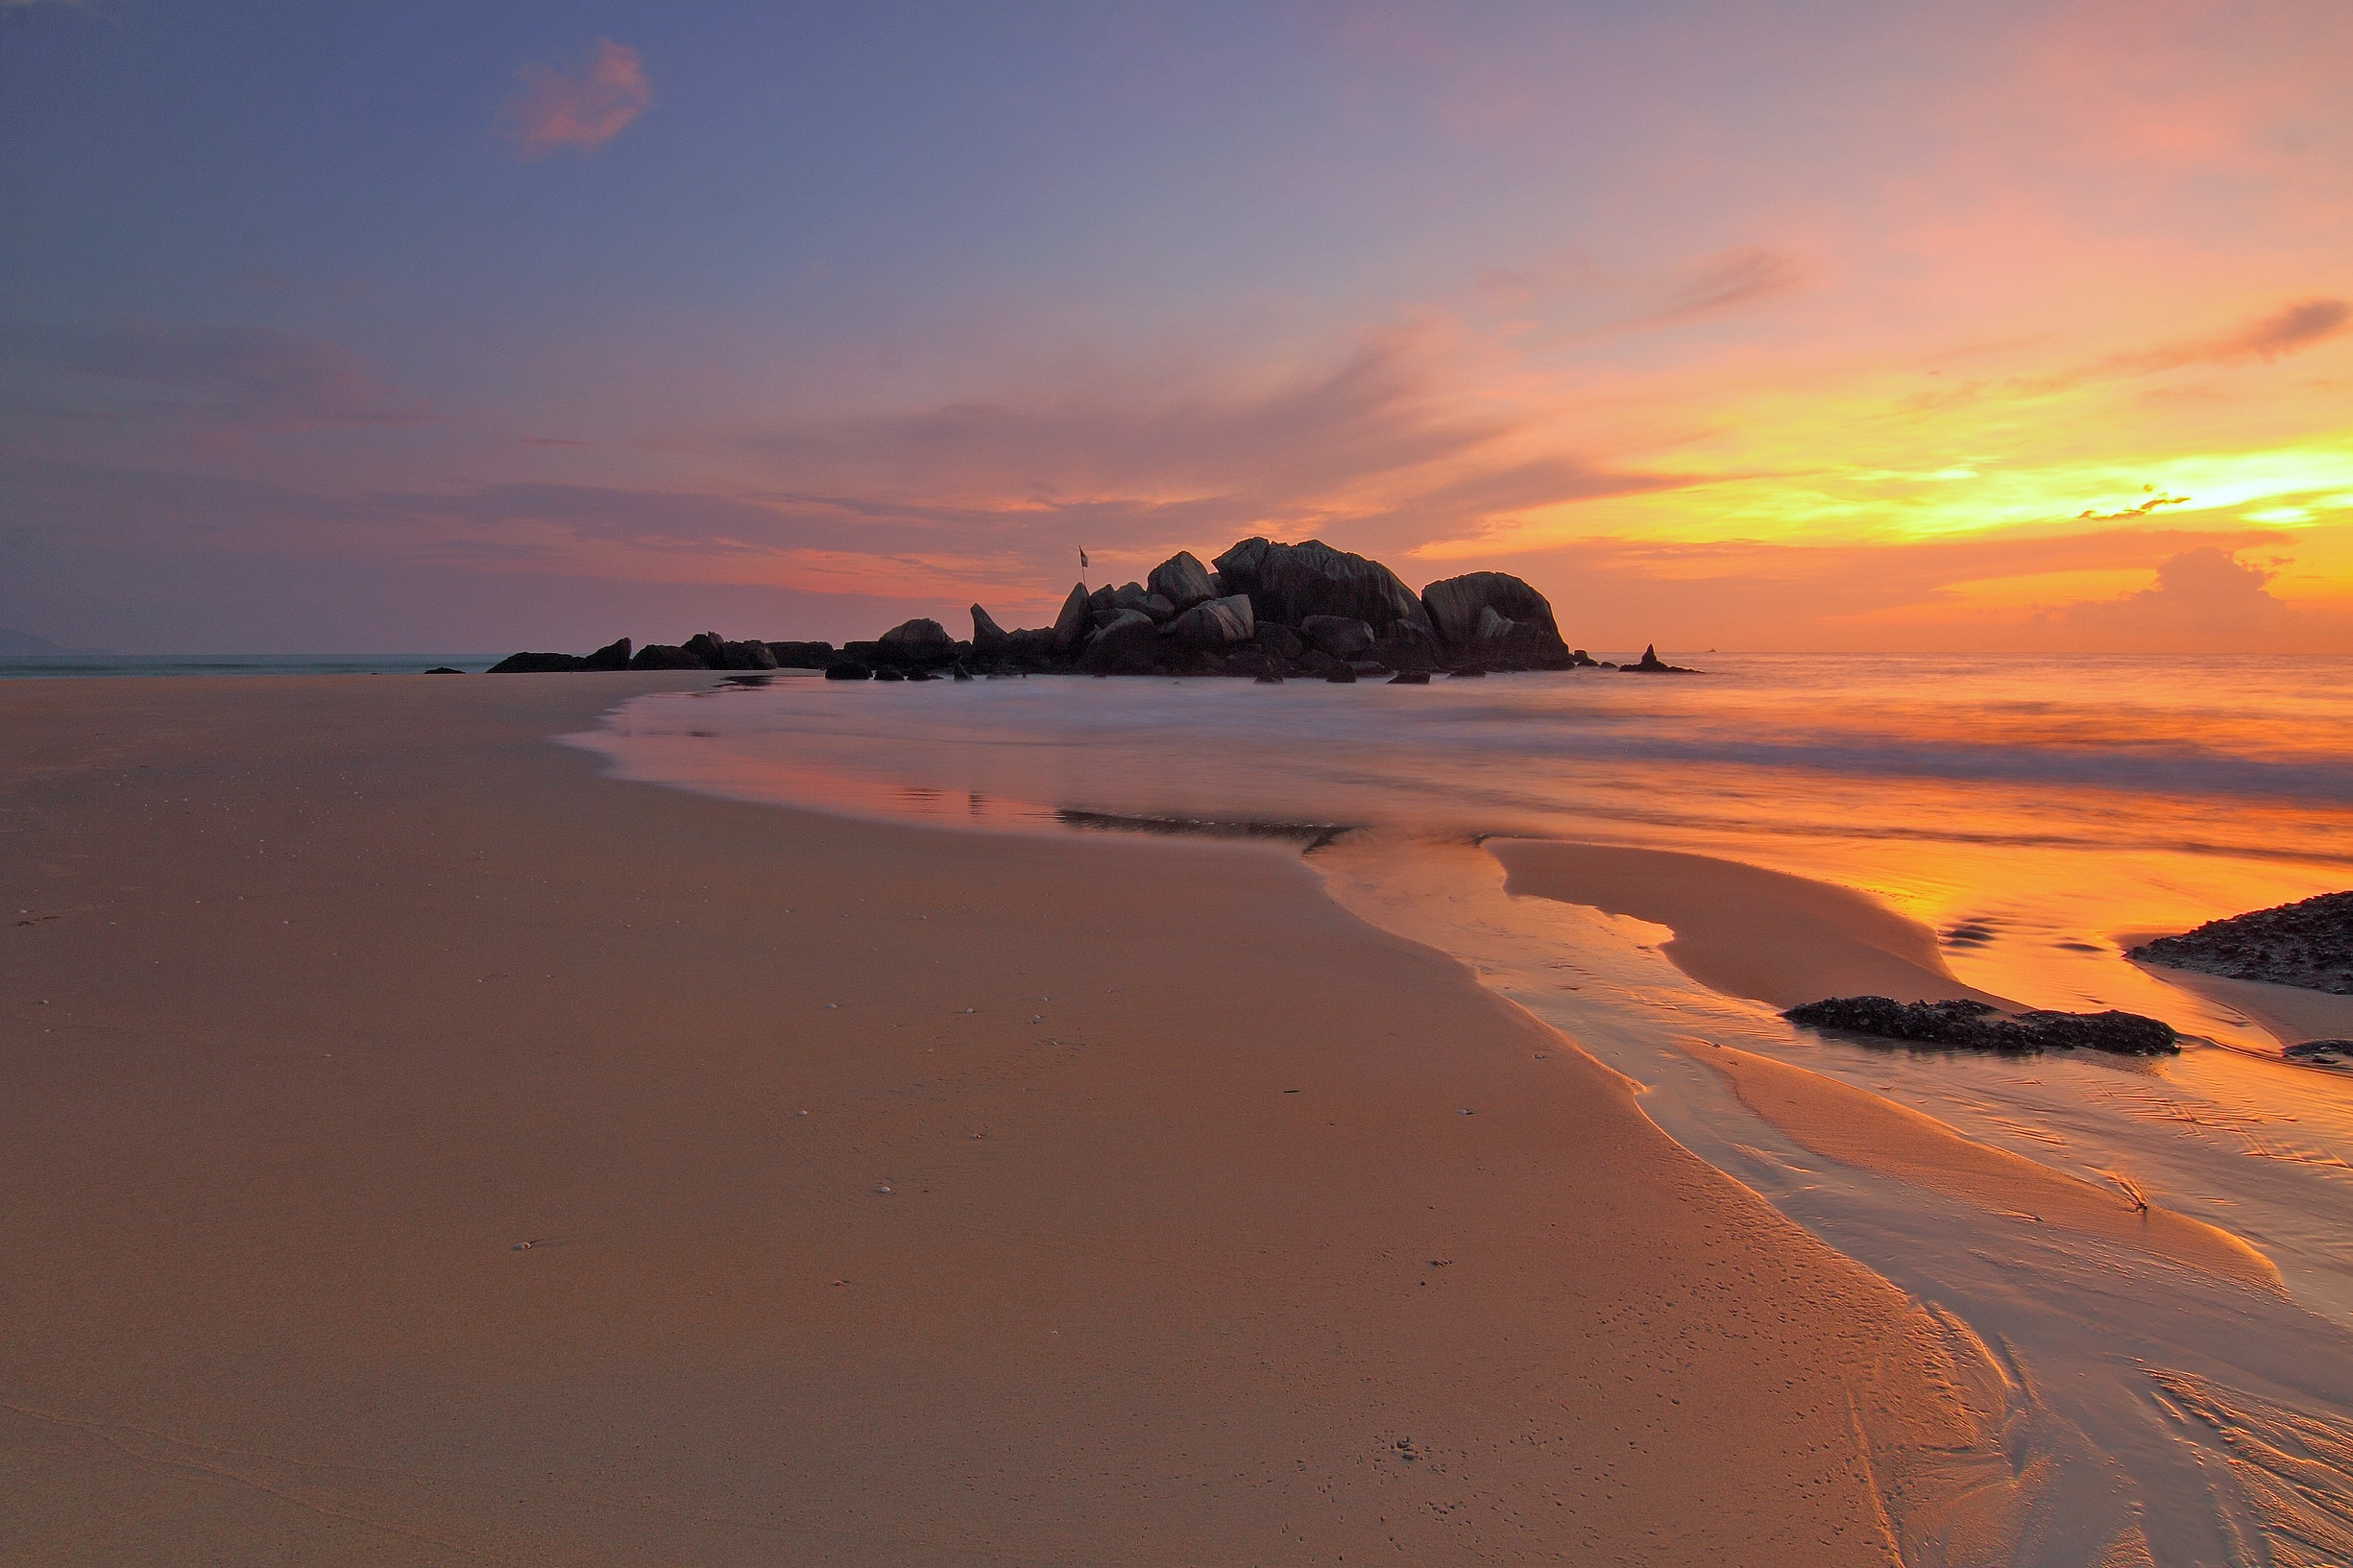 Sea Shore View on Sunset, Beach, Seascape, Water, Vacation, HQ Photo